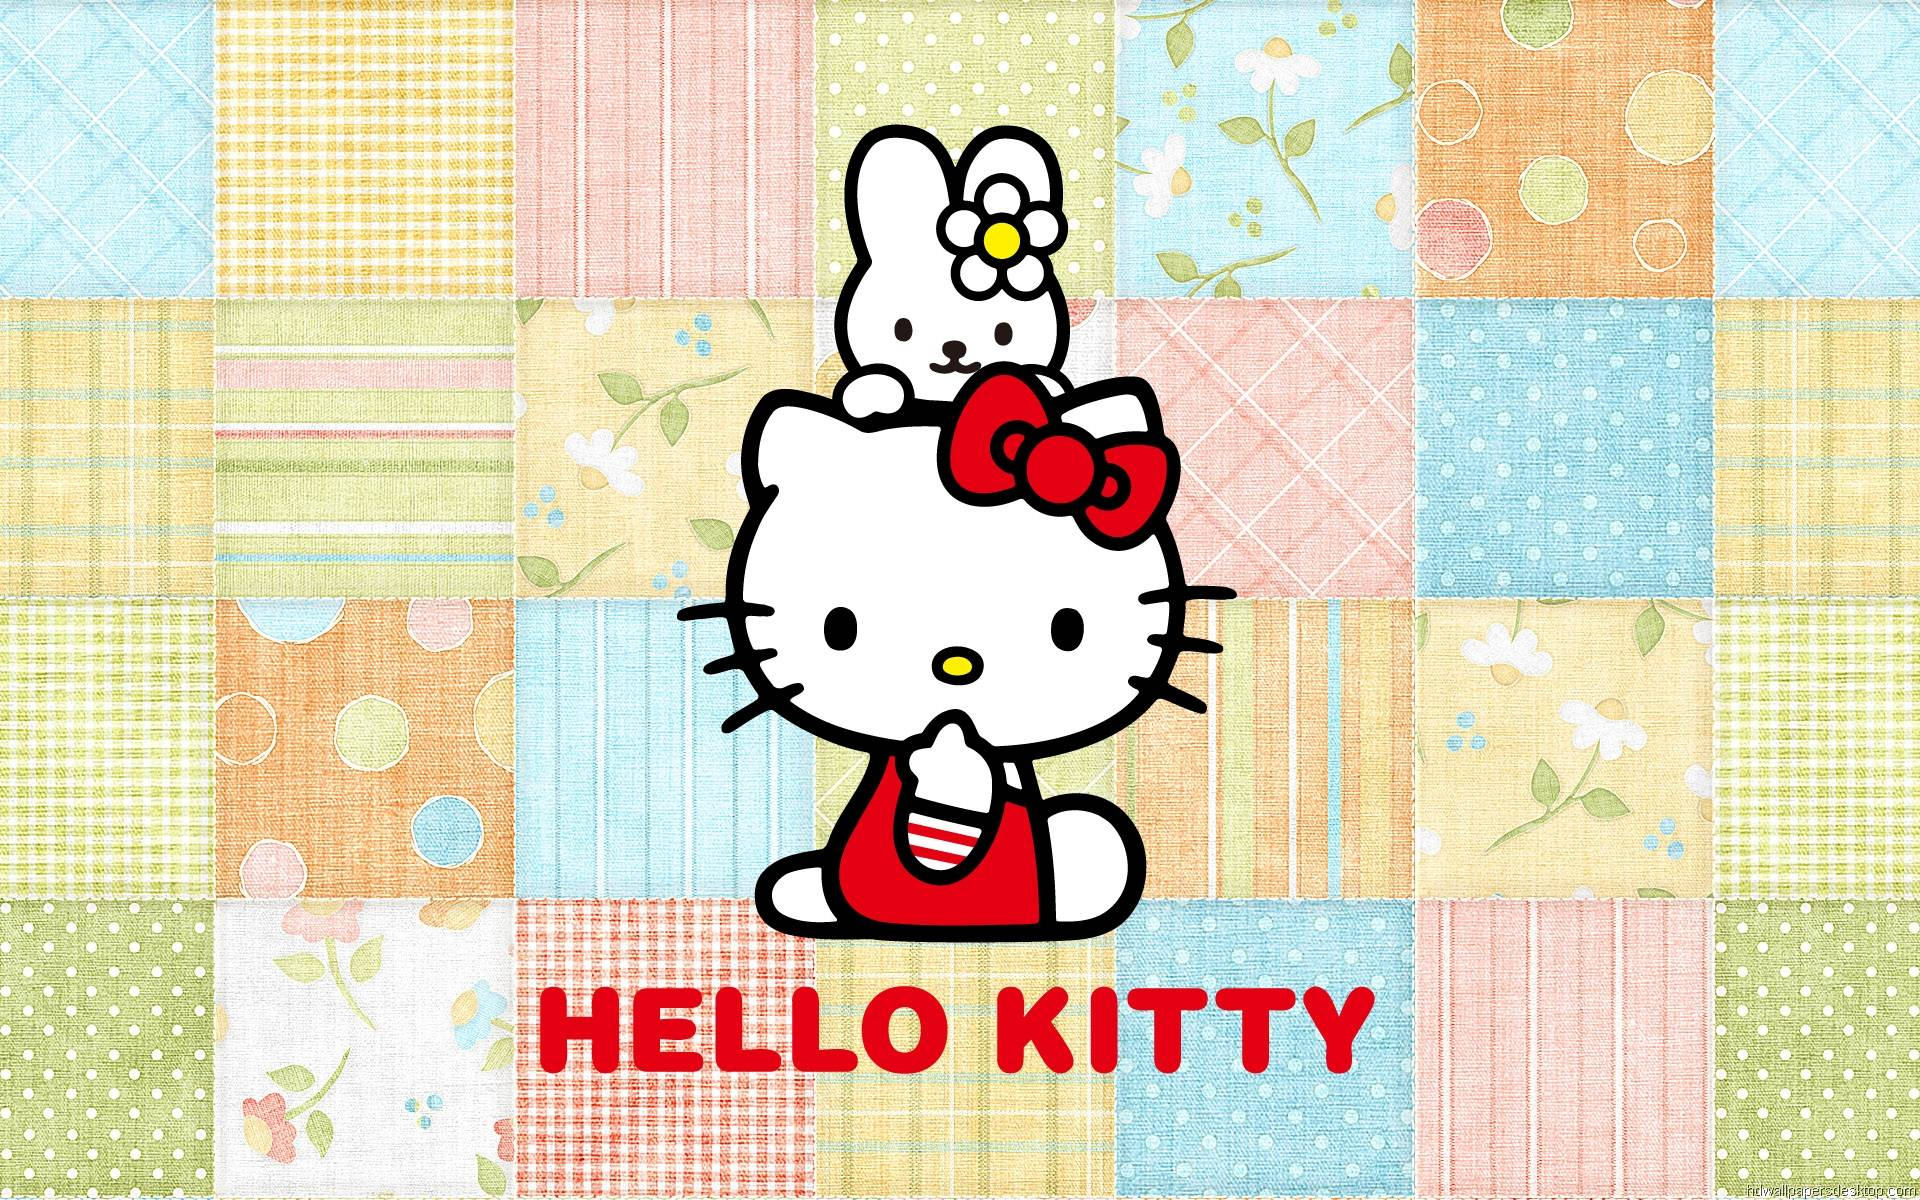 Good Wallpaper Hello Kitty Evil - Cg51klY  You Should Have_443130.jpg